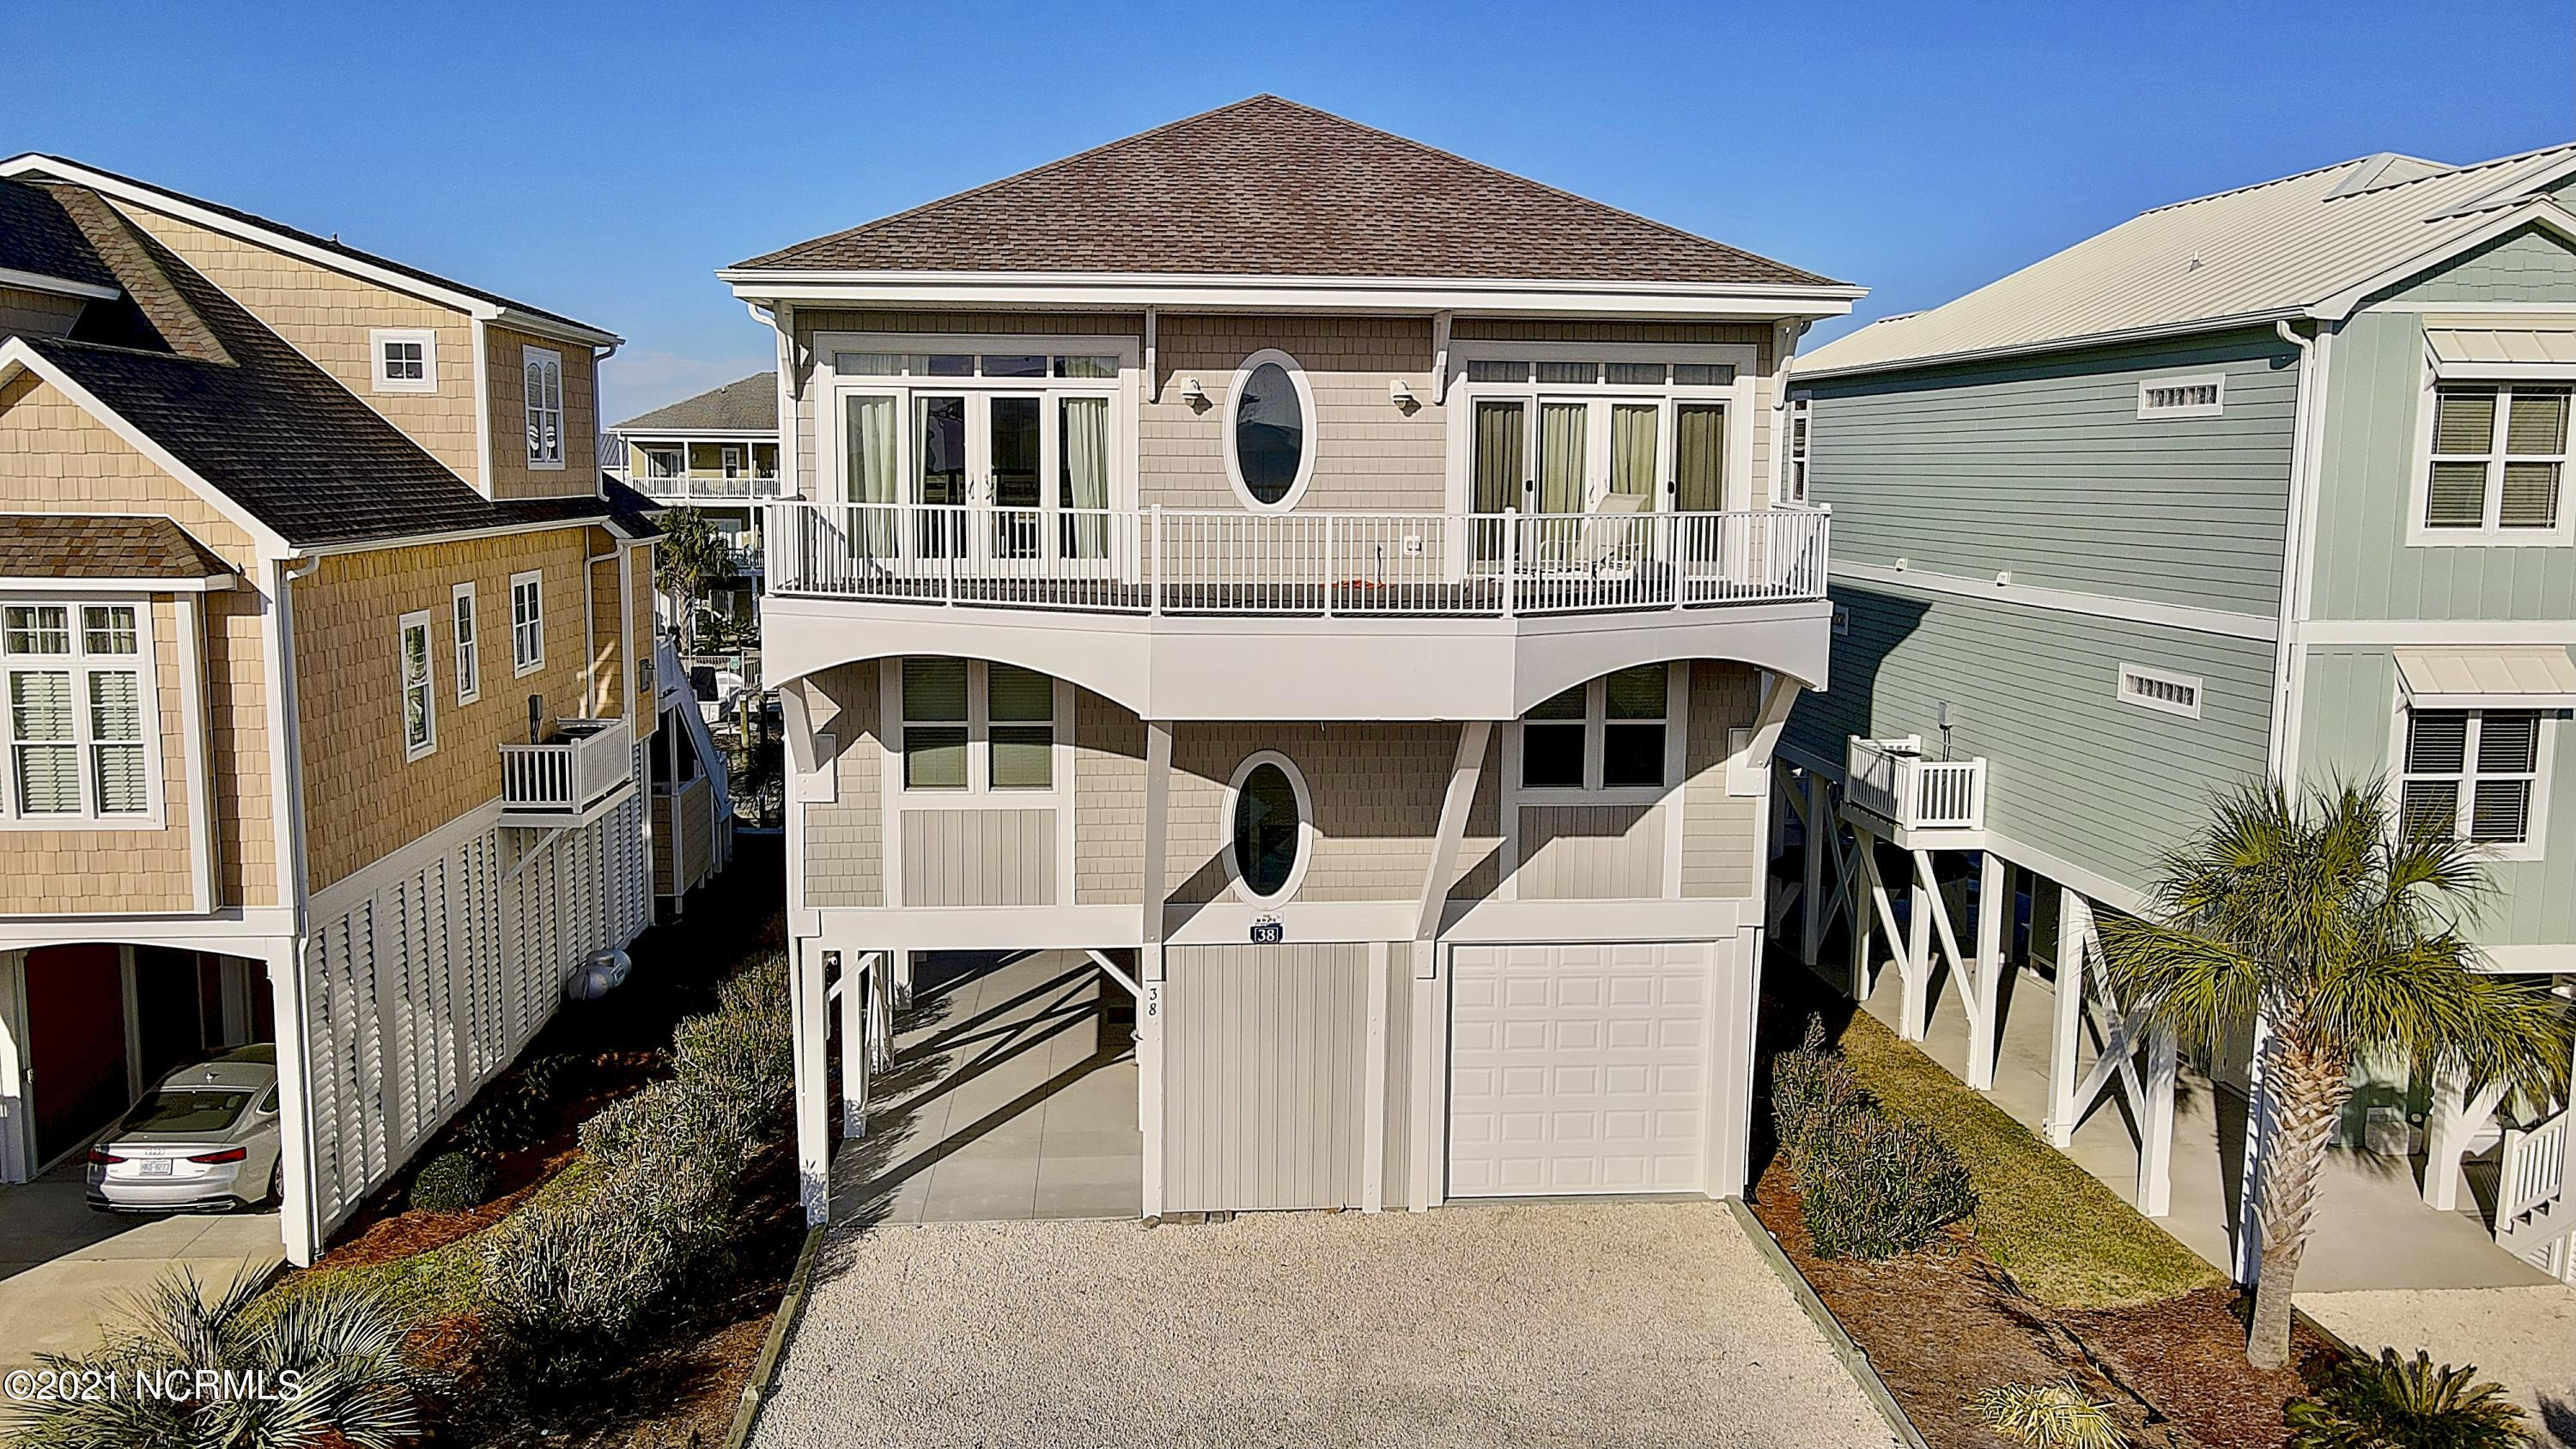 38 The Peninsula Ocean Isle Beach, NC 28469